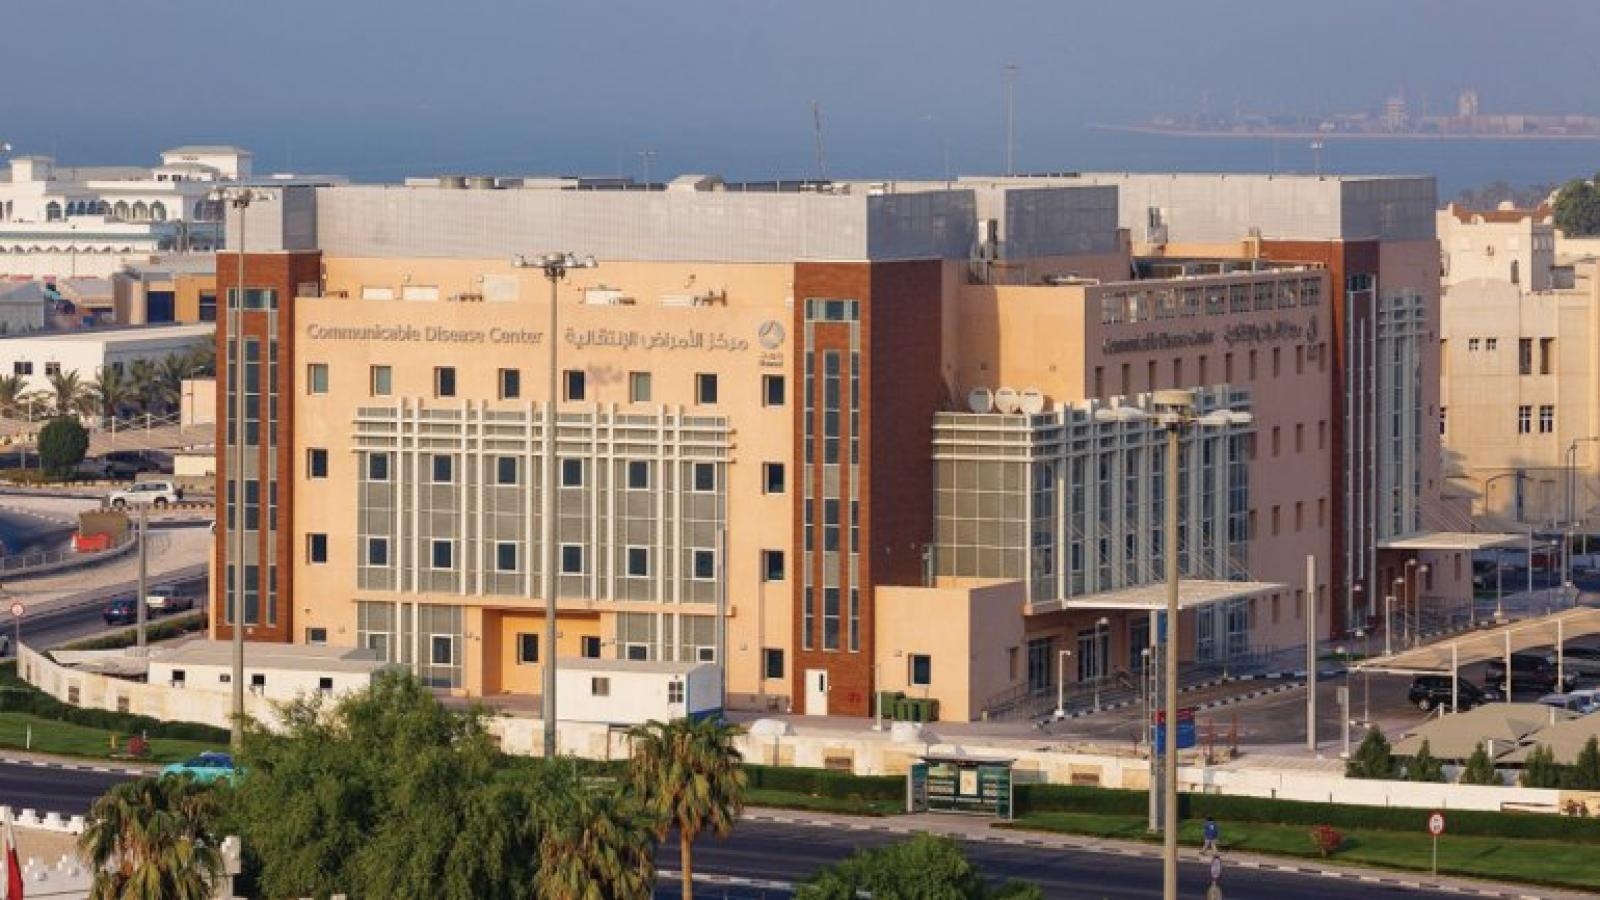 HMC's Communicable Disease Center awarded highest certification for excellence in person-centered care